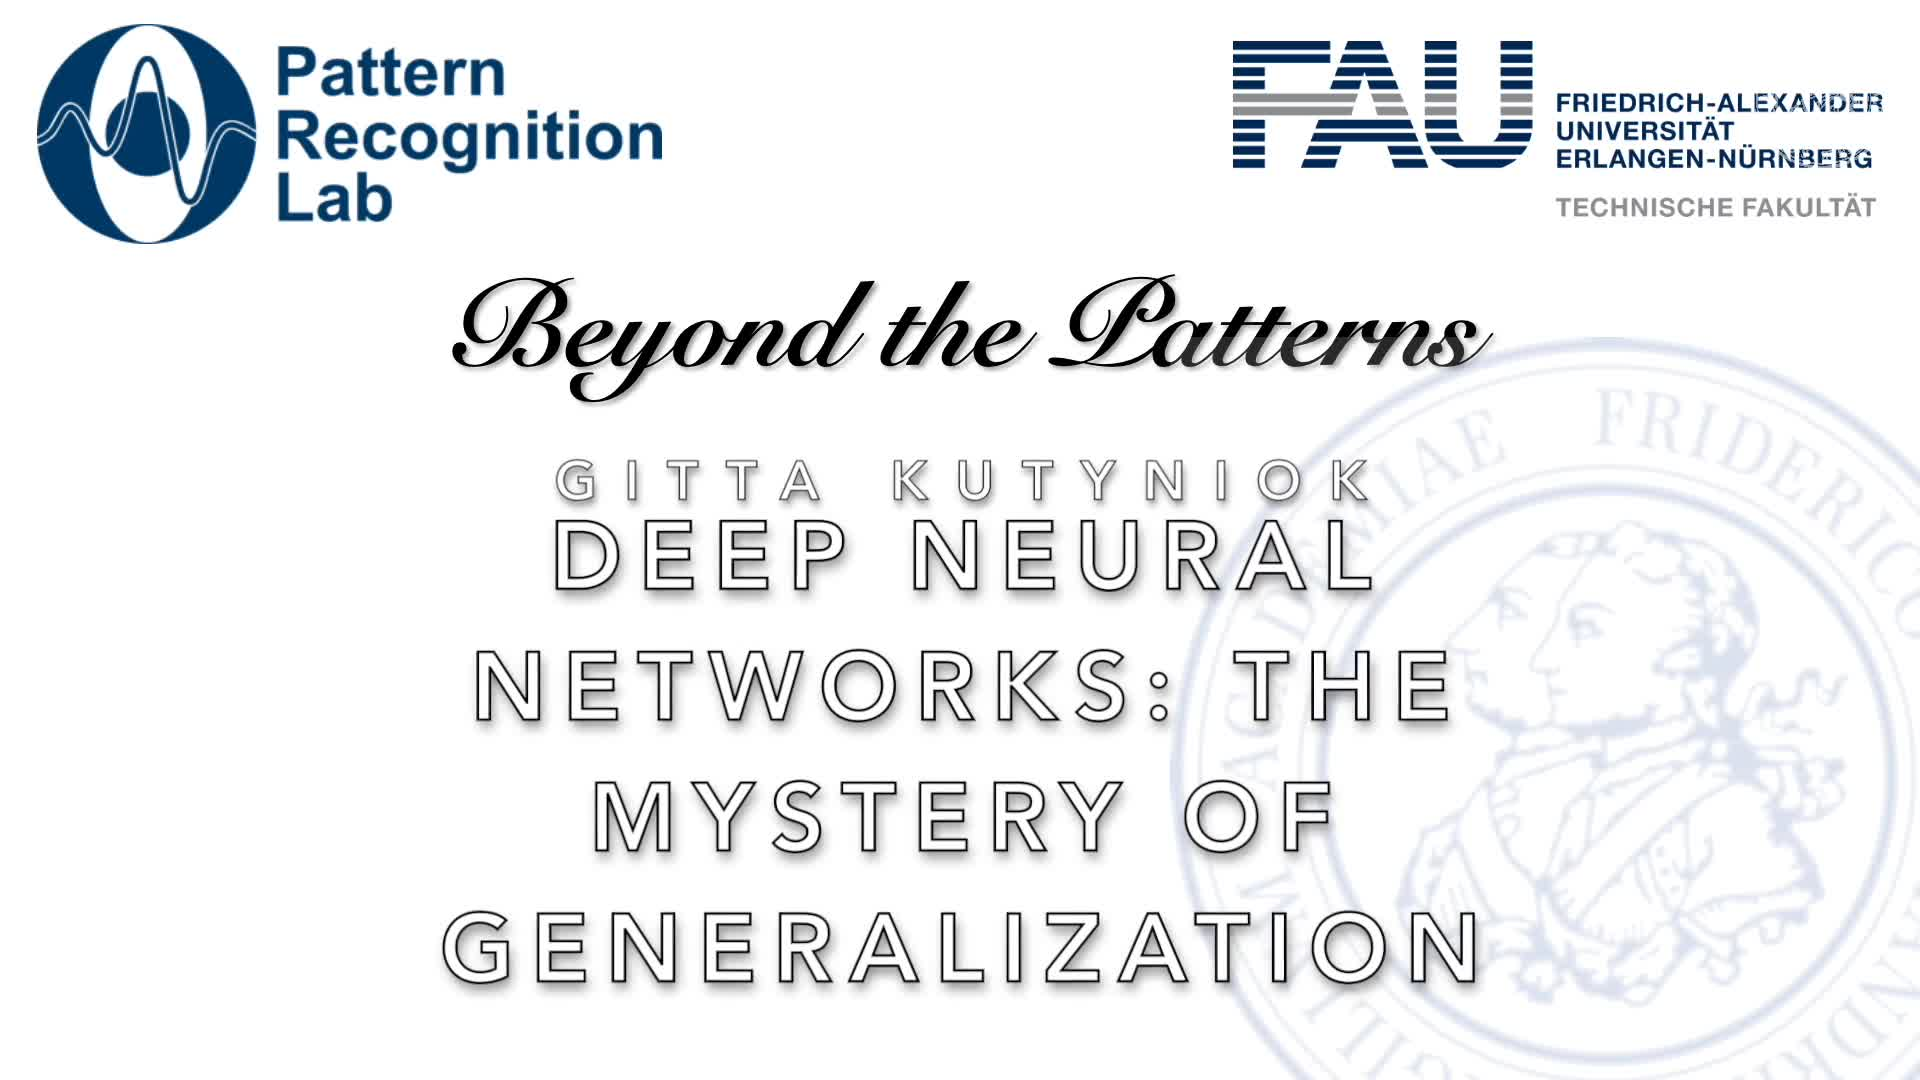 Beyond the Patterns - Gitta Kutyniok – Deep Neural Networks: The Mystery of Generalization preview image